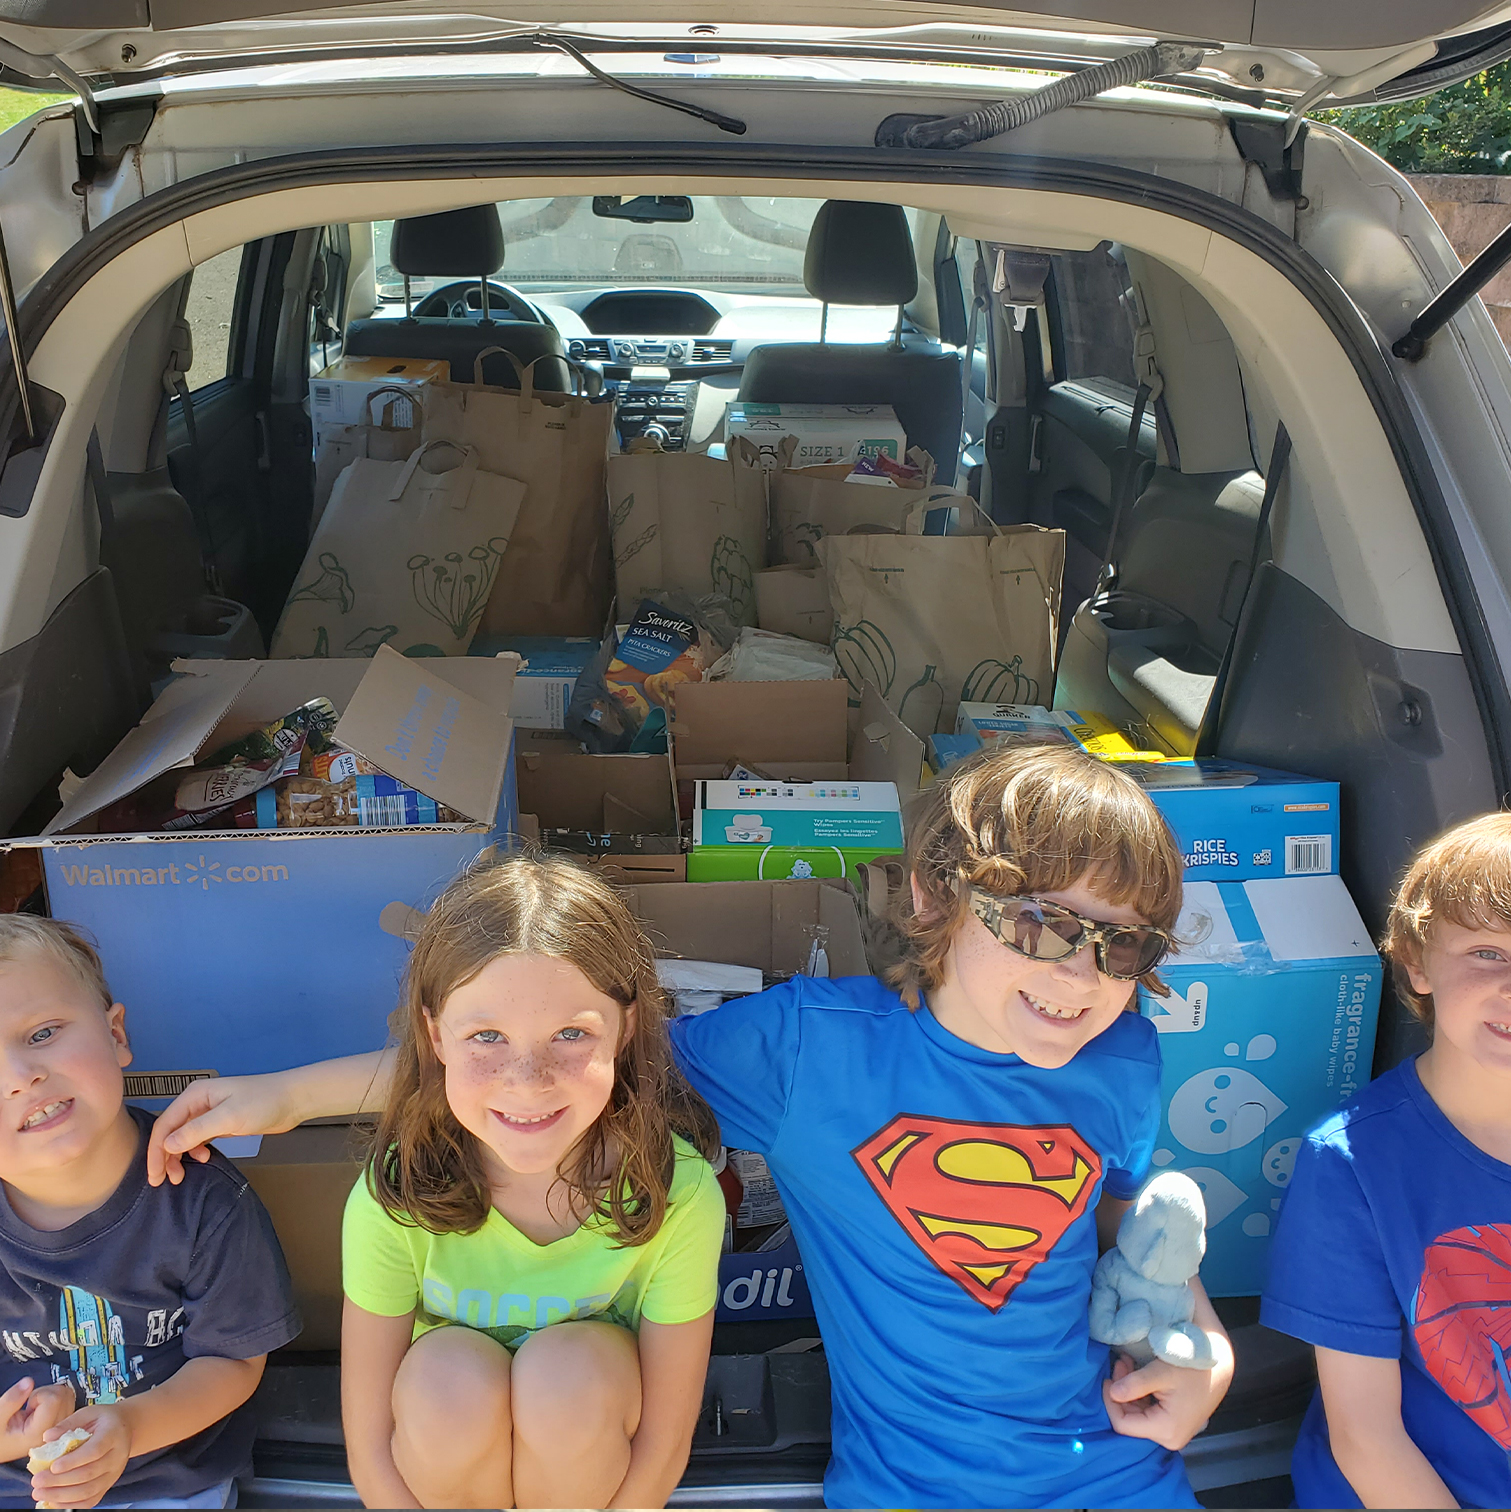 4 youth posing in front of a car load of donations